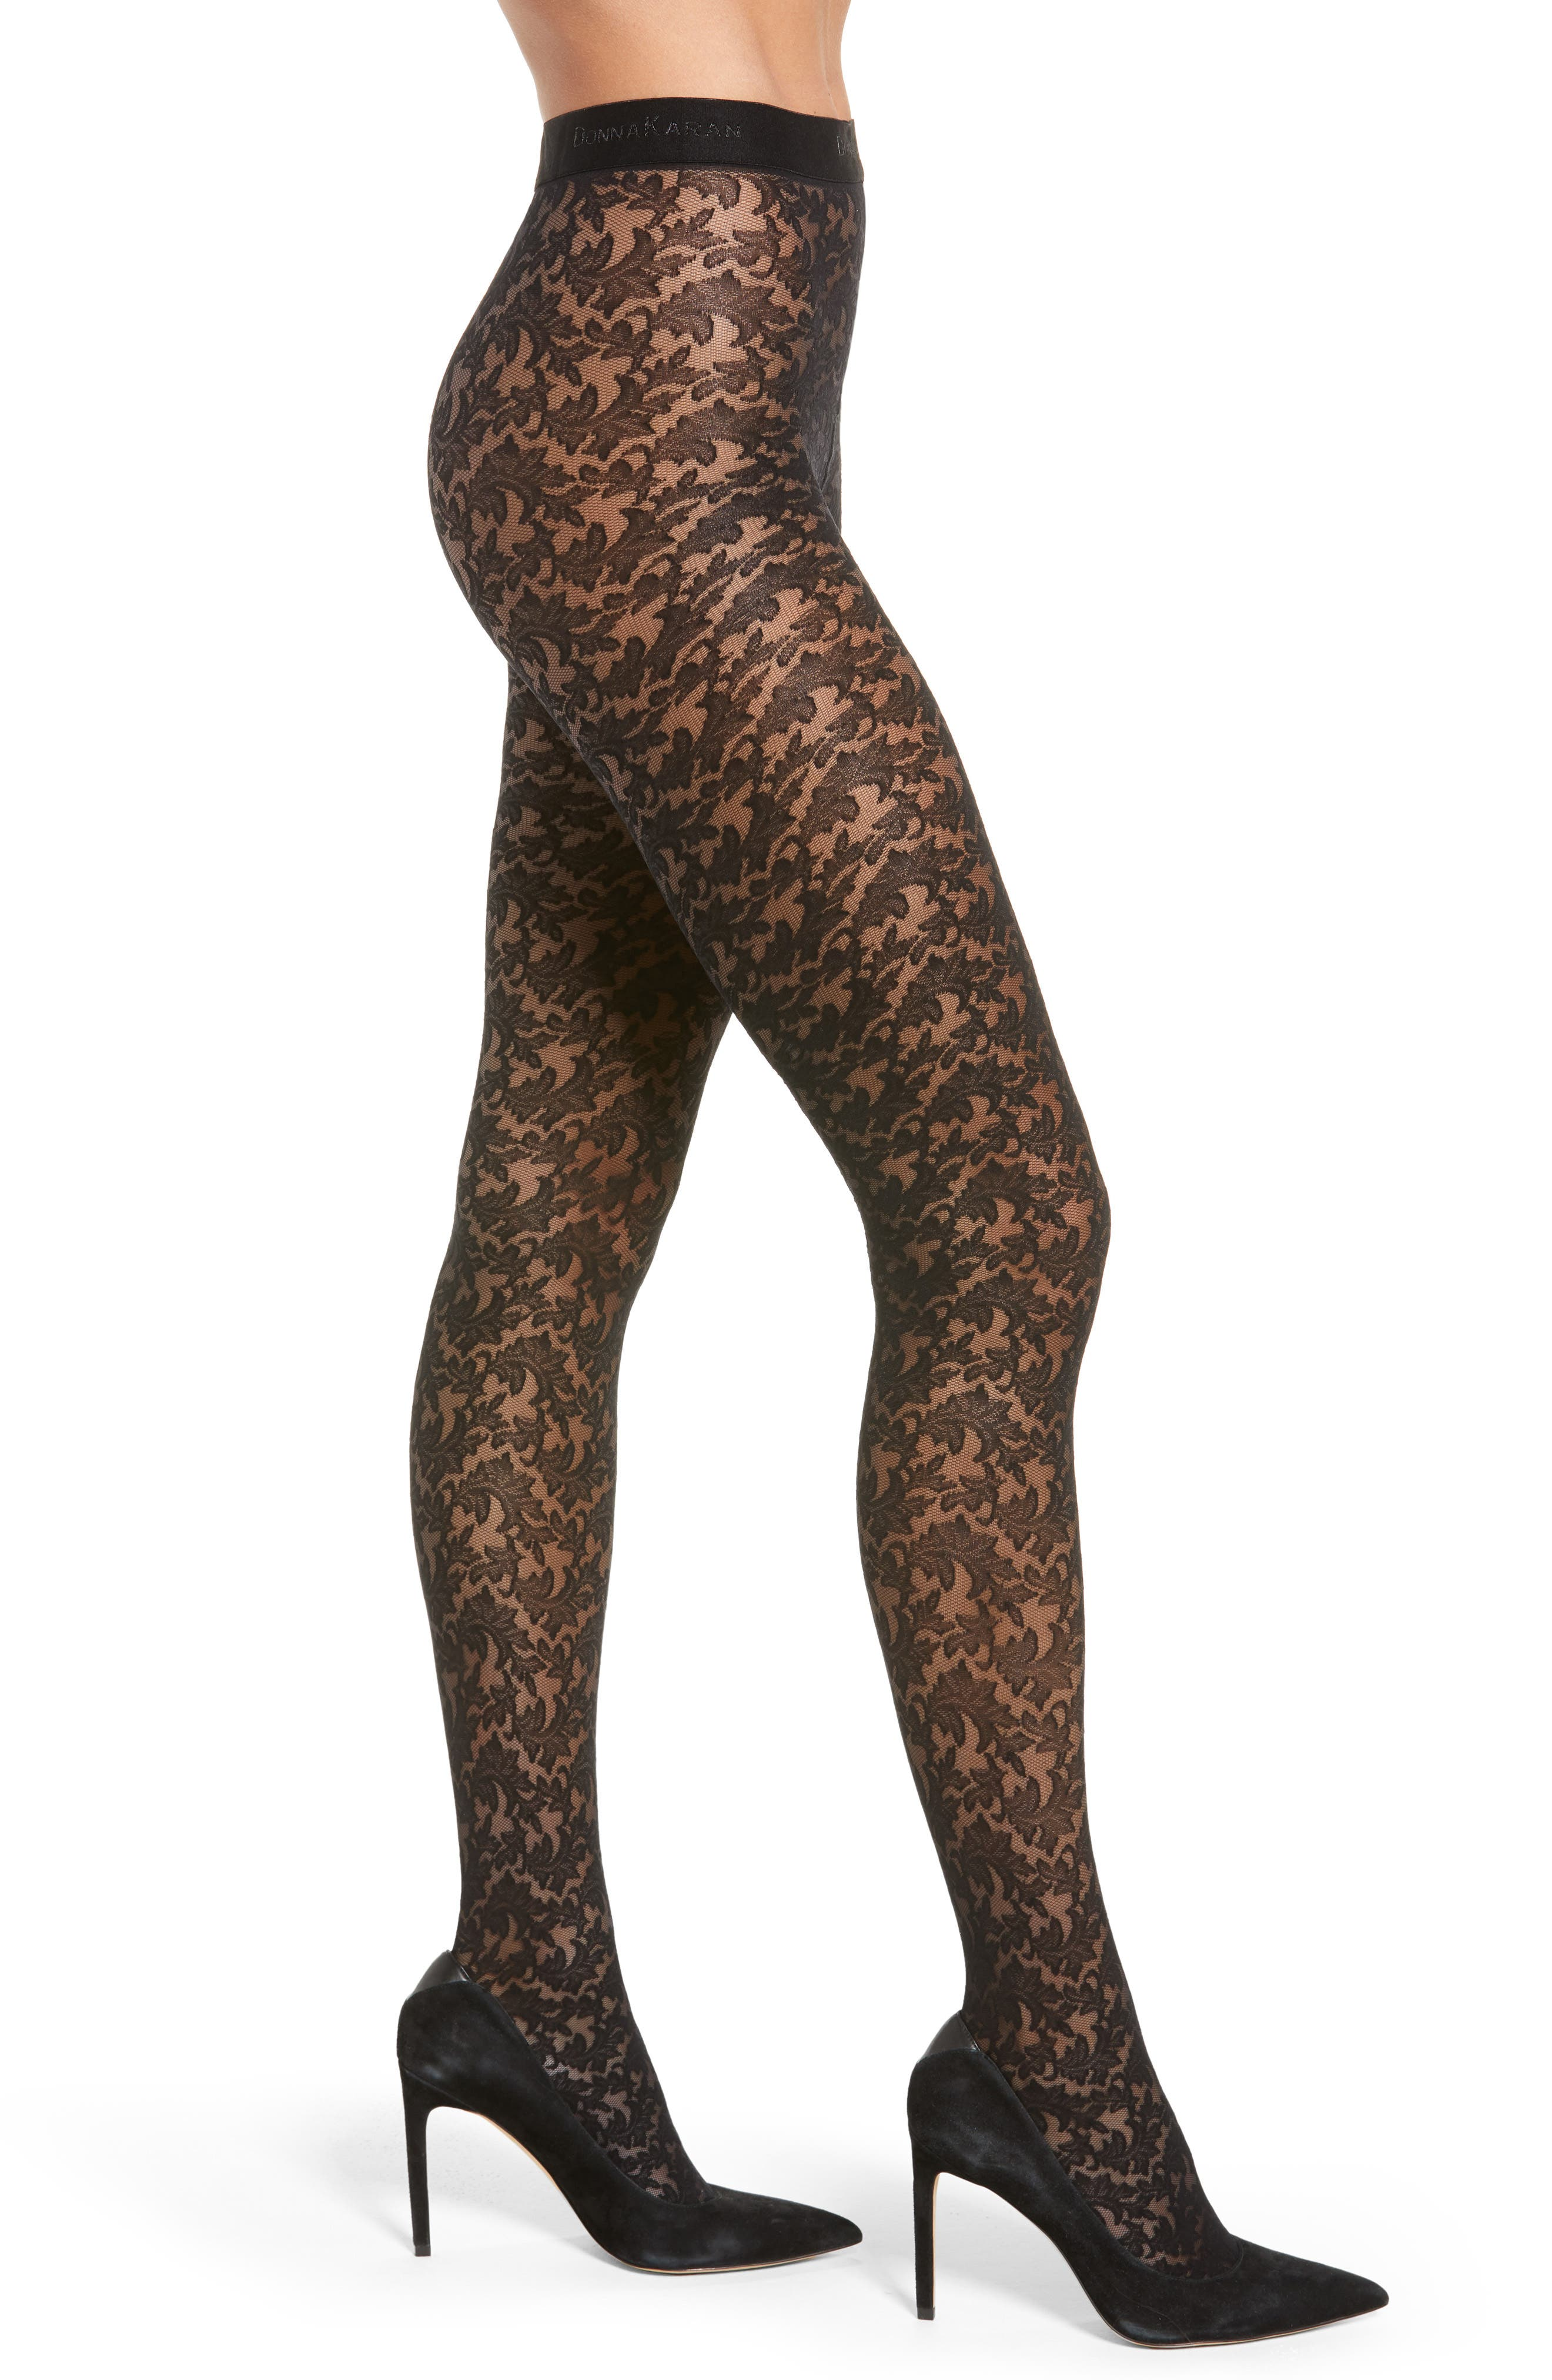 Signature Collection Lace Tights in Black from DKNY